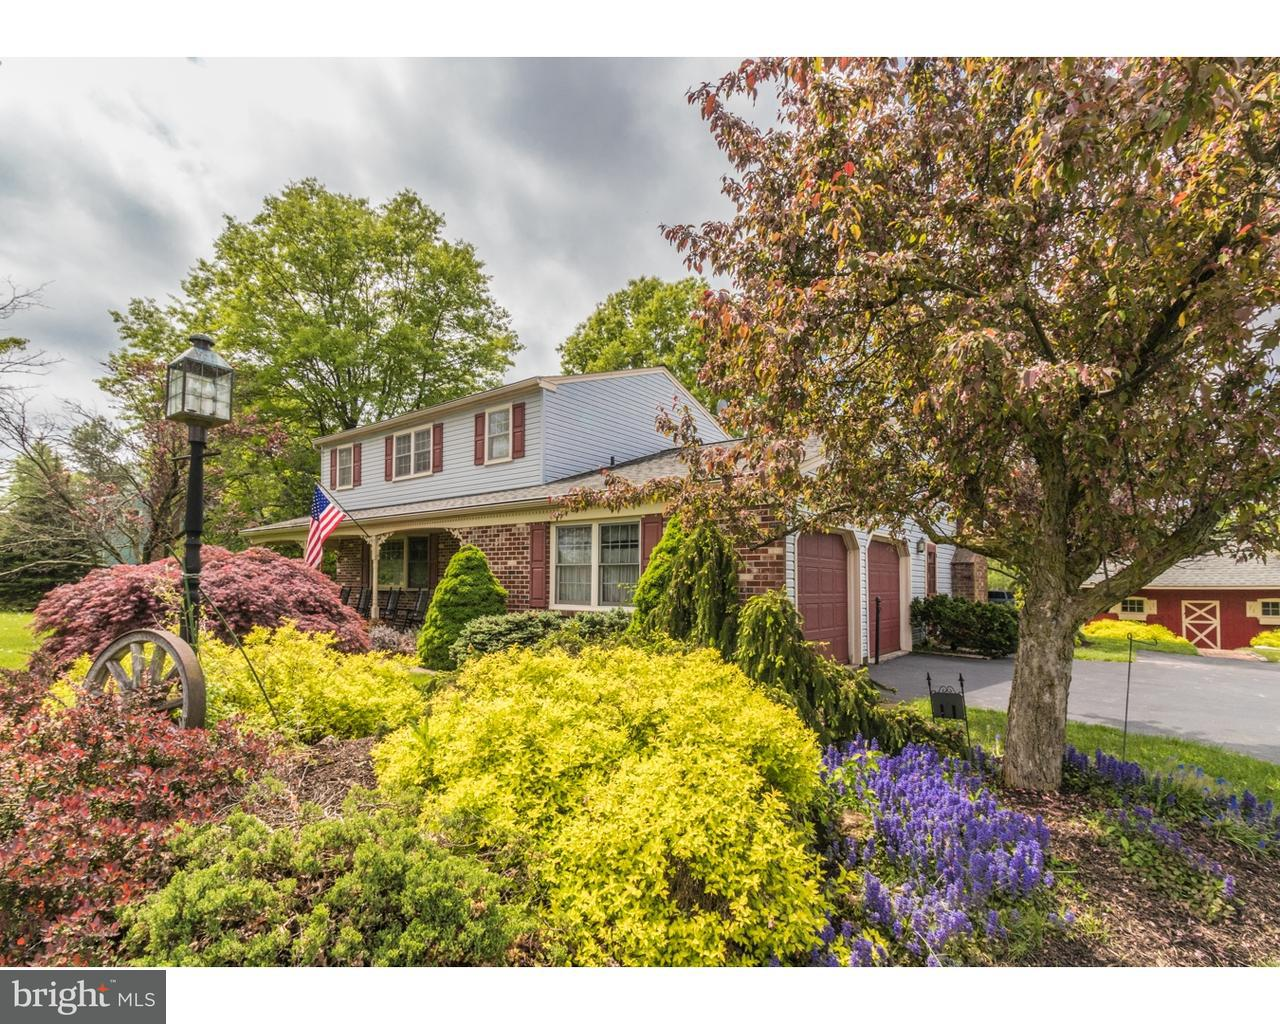 853 KULP RD, HARLEYSVILLE - Listed at $414,900,